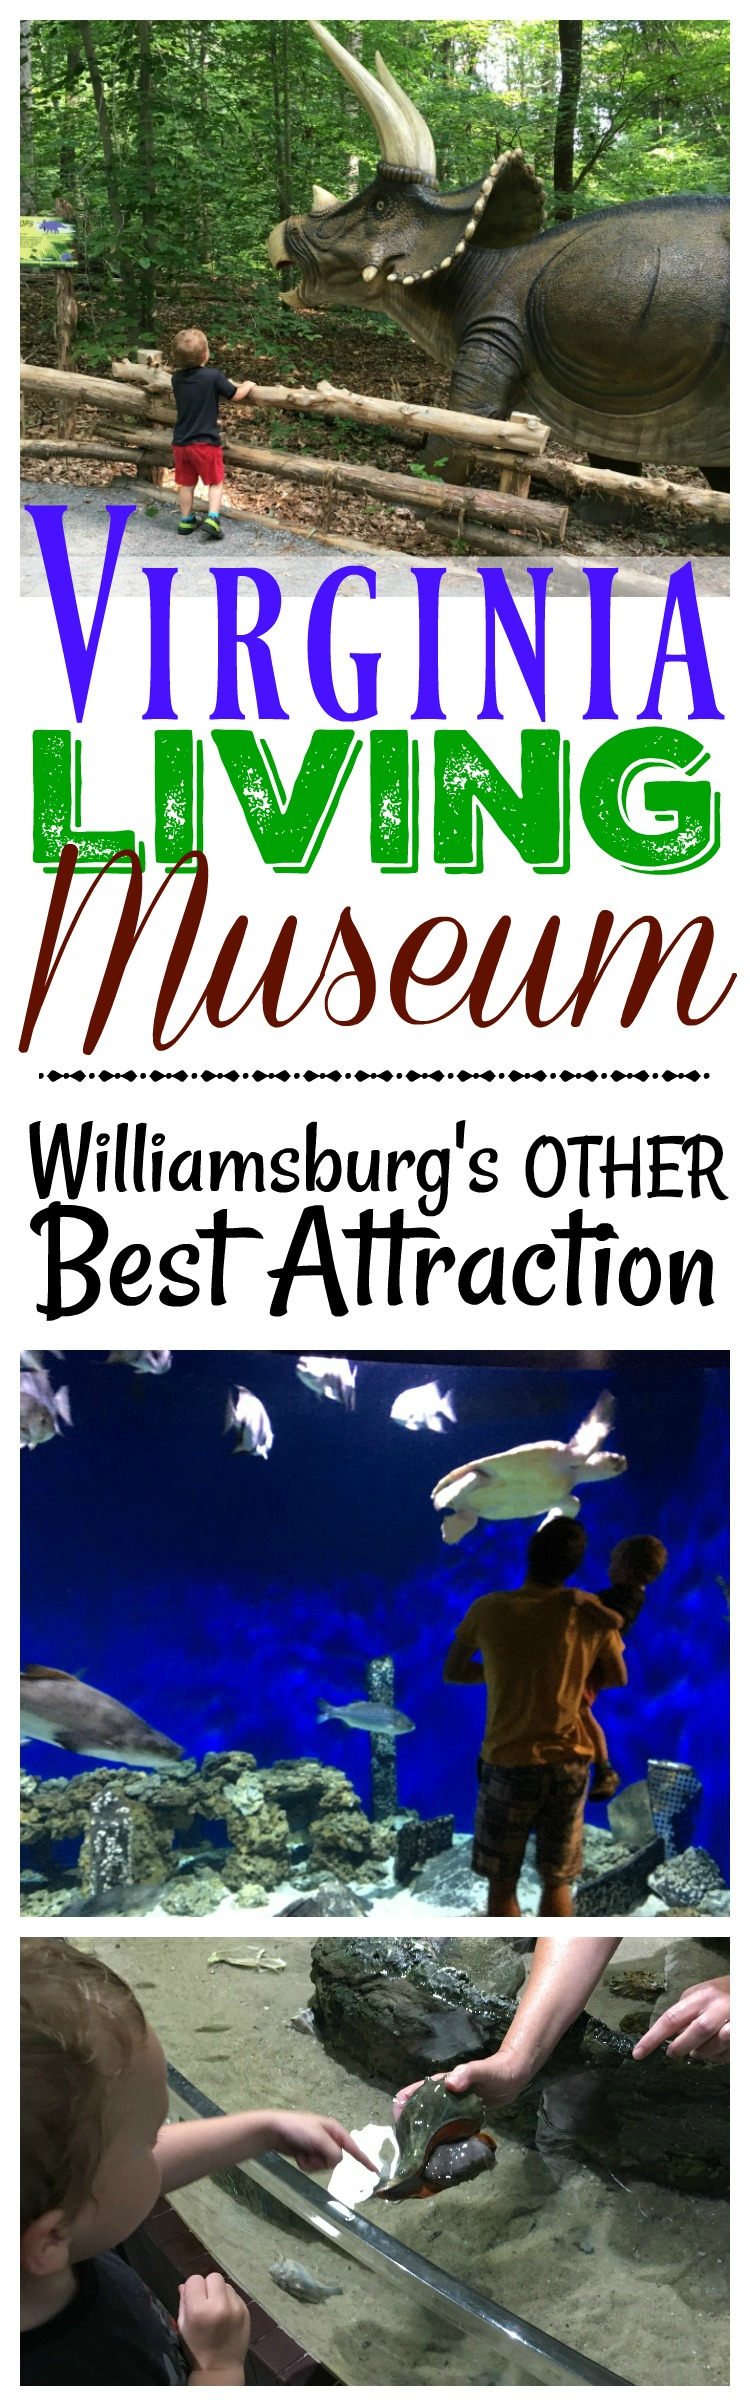 The Virginia Living Museum was definitely one of the best places to take a toddler in Williamsburg, VA! With air conditioning and outdoor exhibits, you can't go wrong!